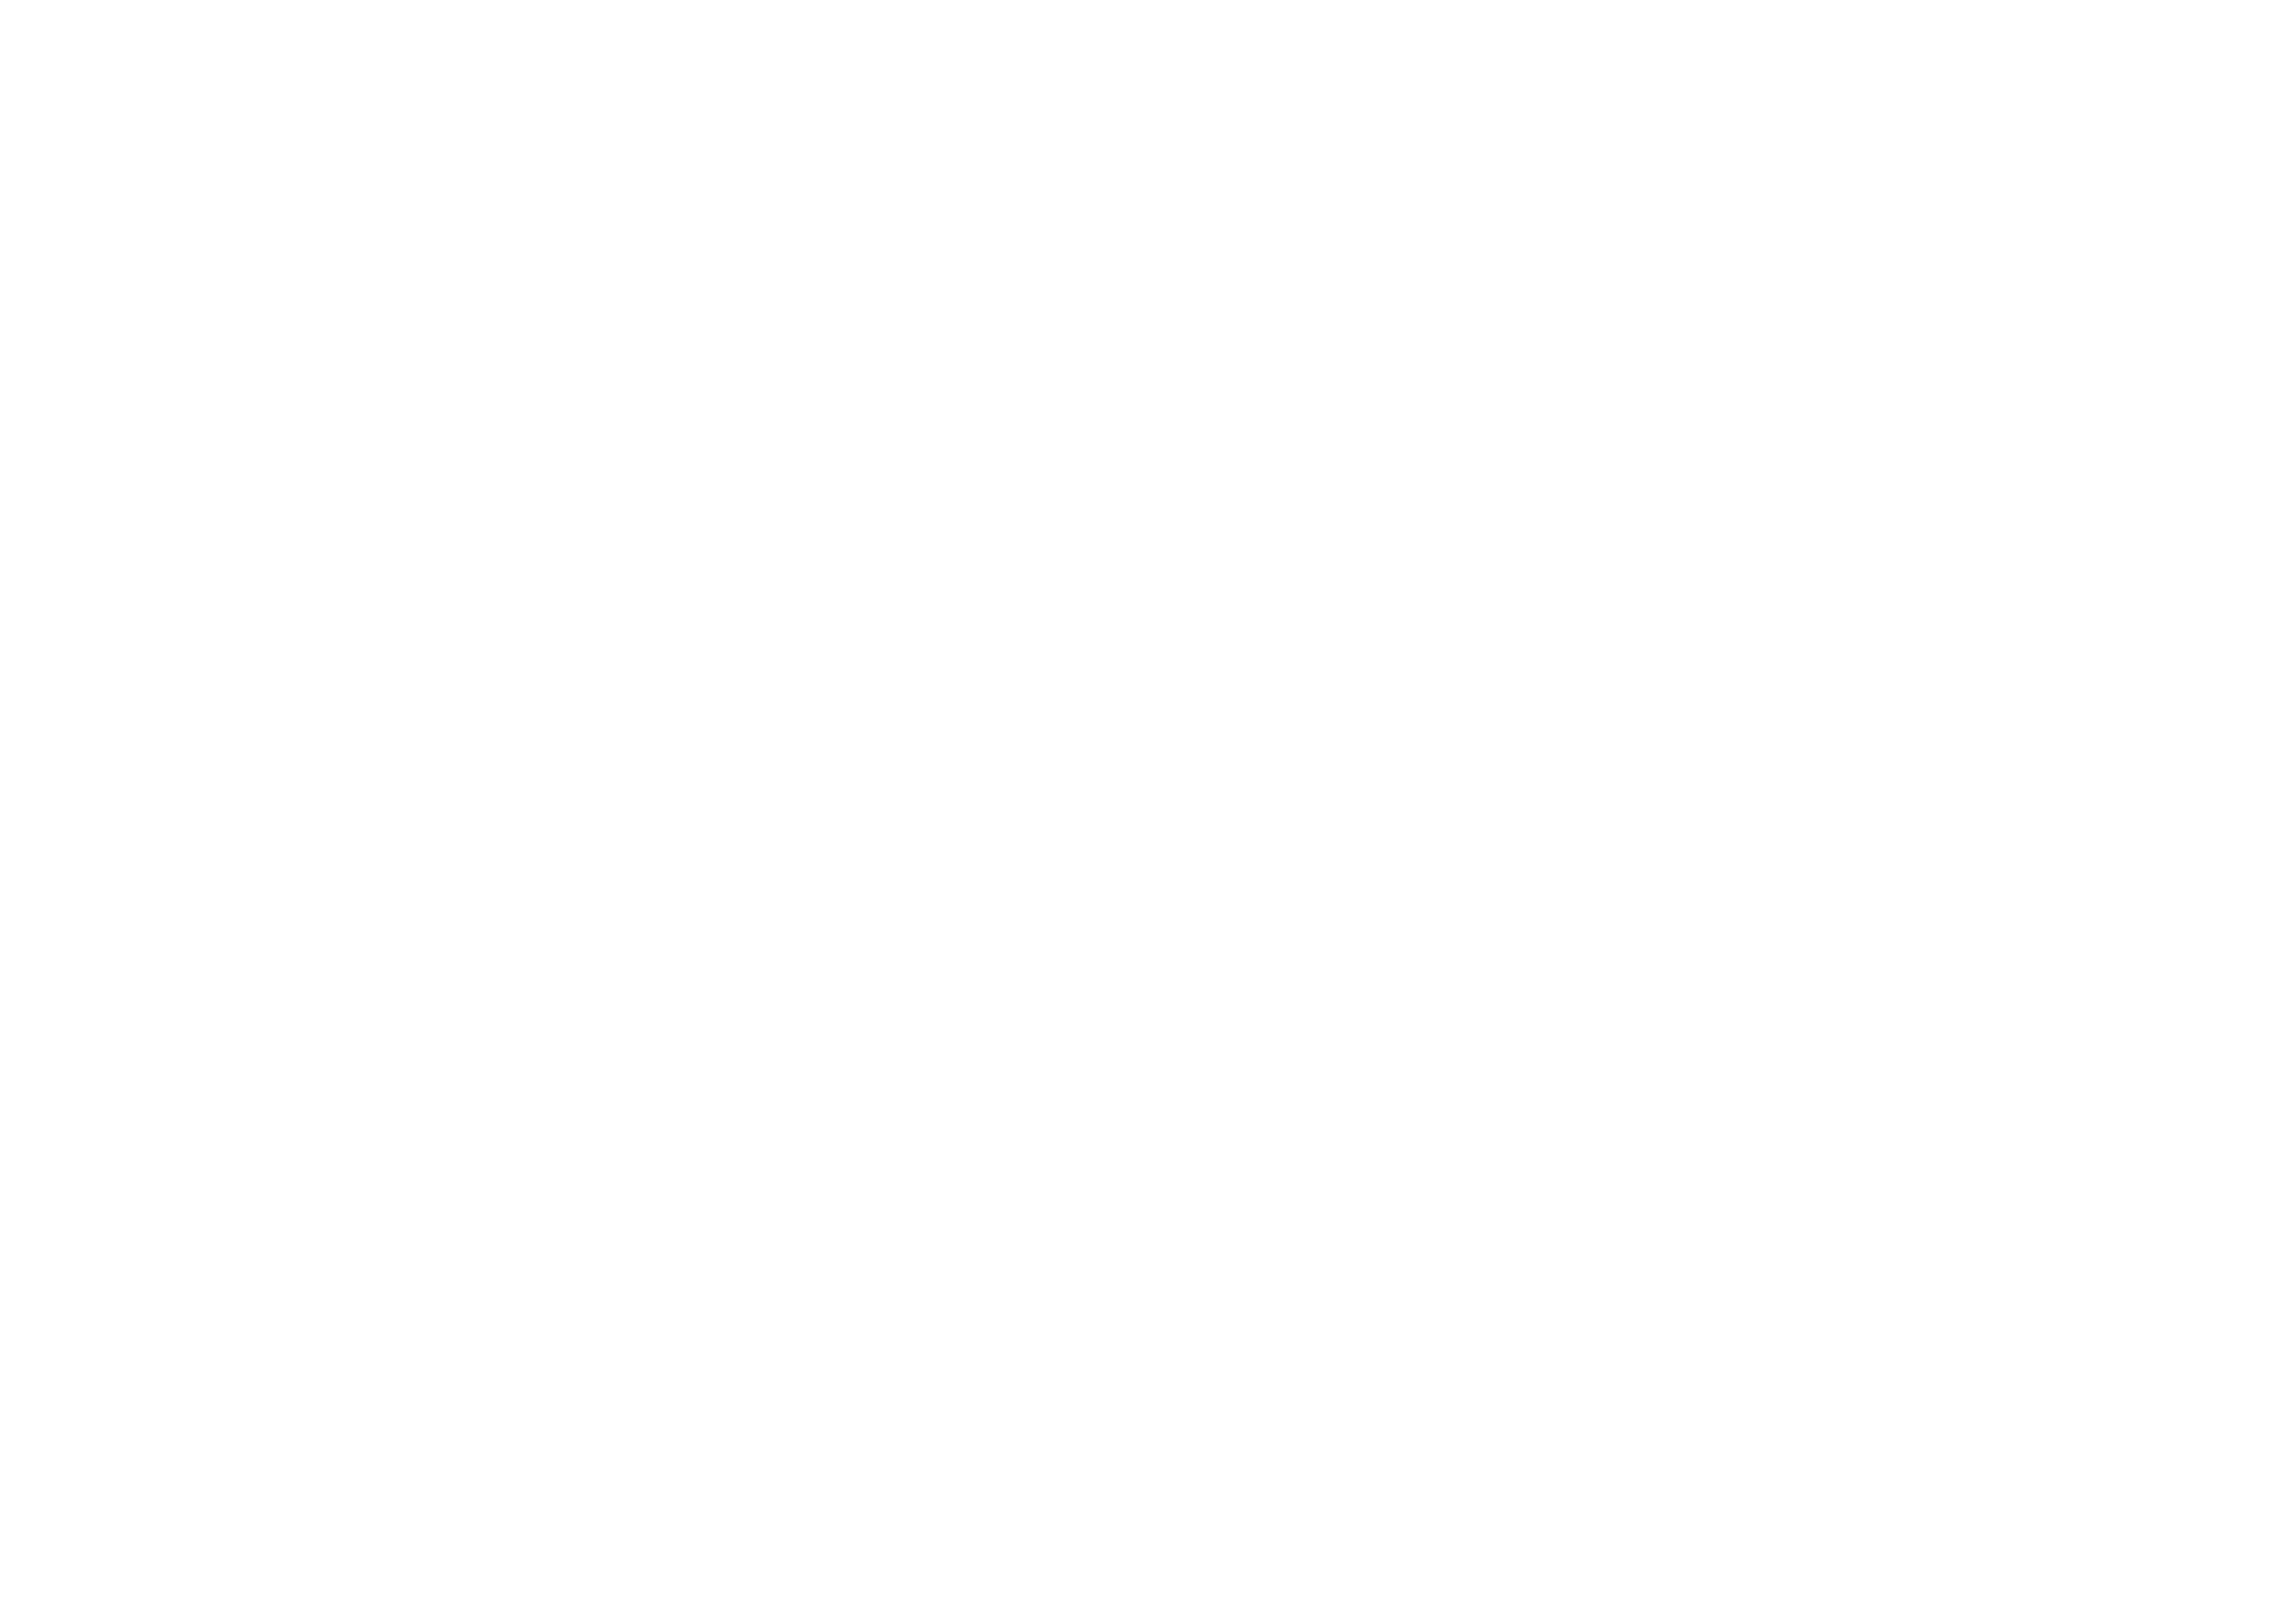 Walled